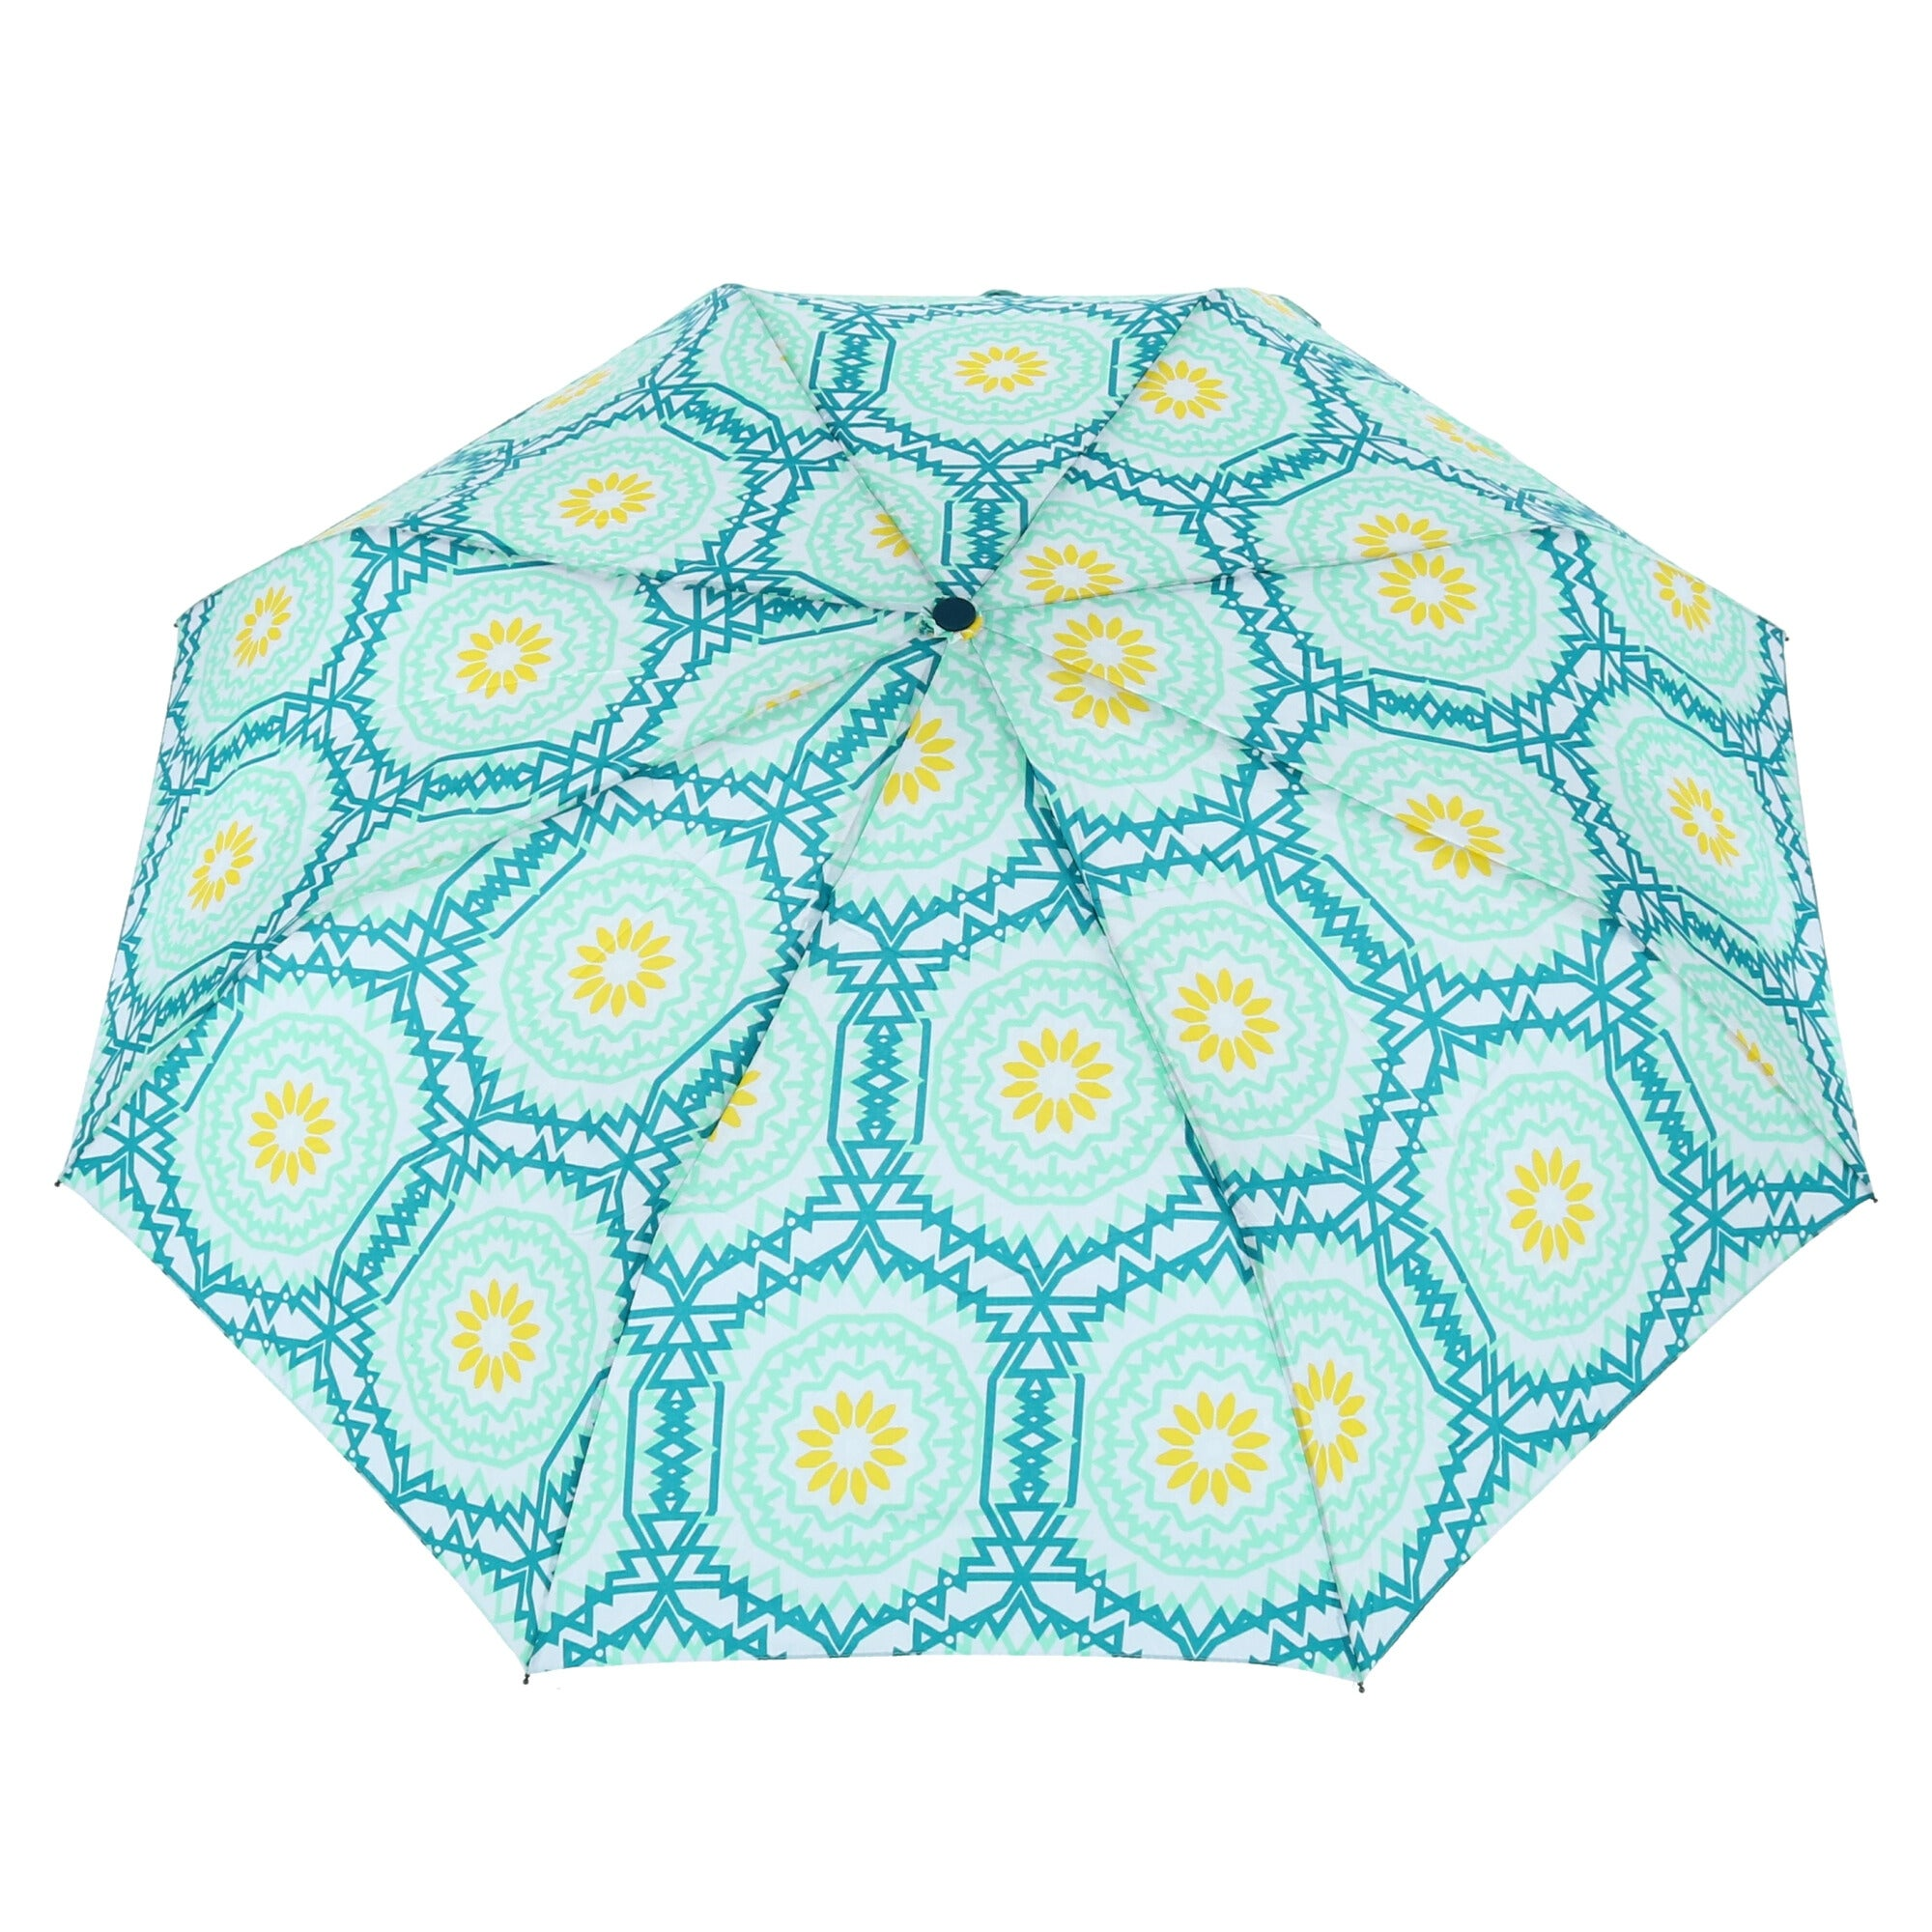 Sage Automatic Umbrellas Pattern with Leaves Environment Nature Simplicity Summer Spring Plants Garden Compact Automatic Open Close for Men and Women Traveler Reseda Green White